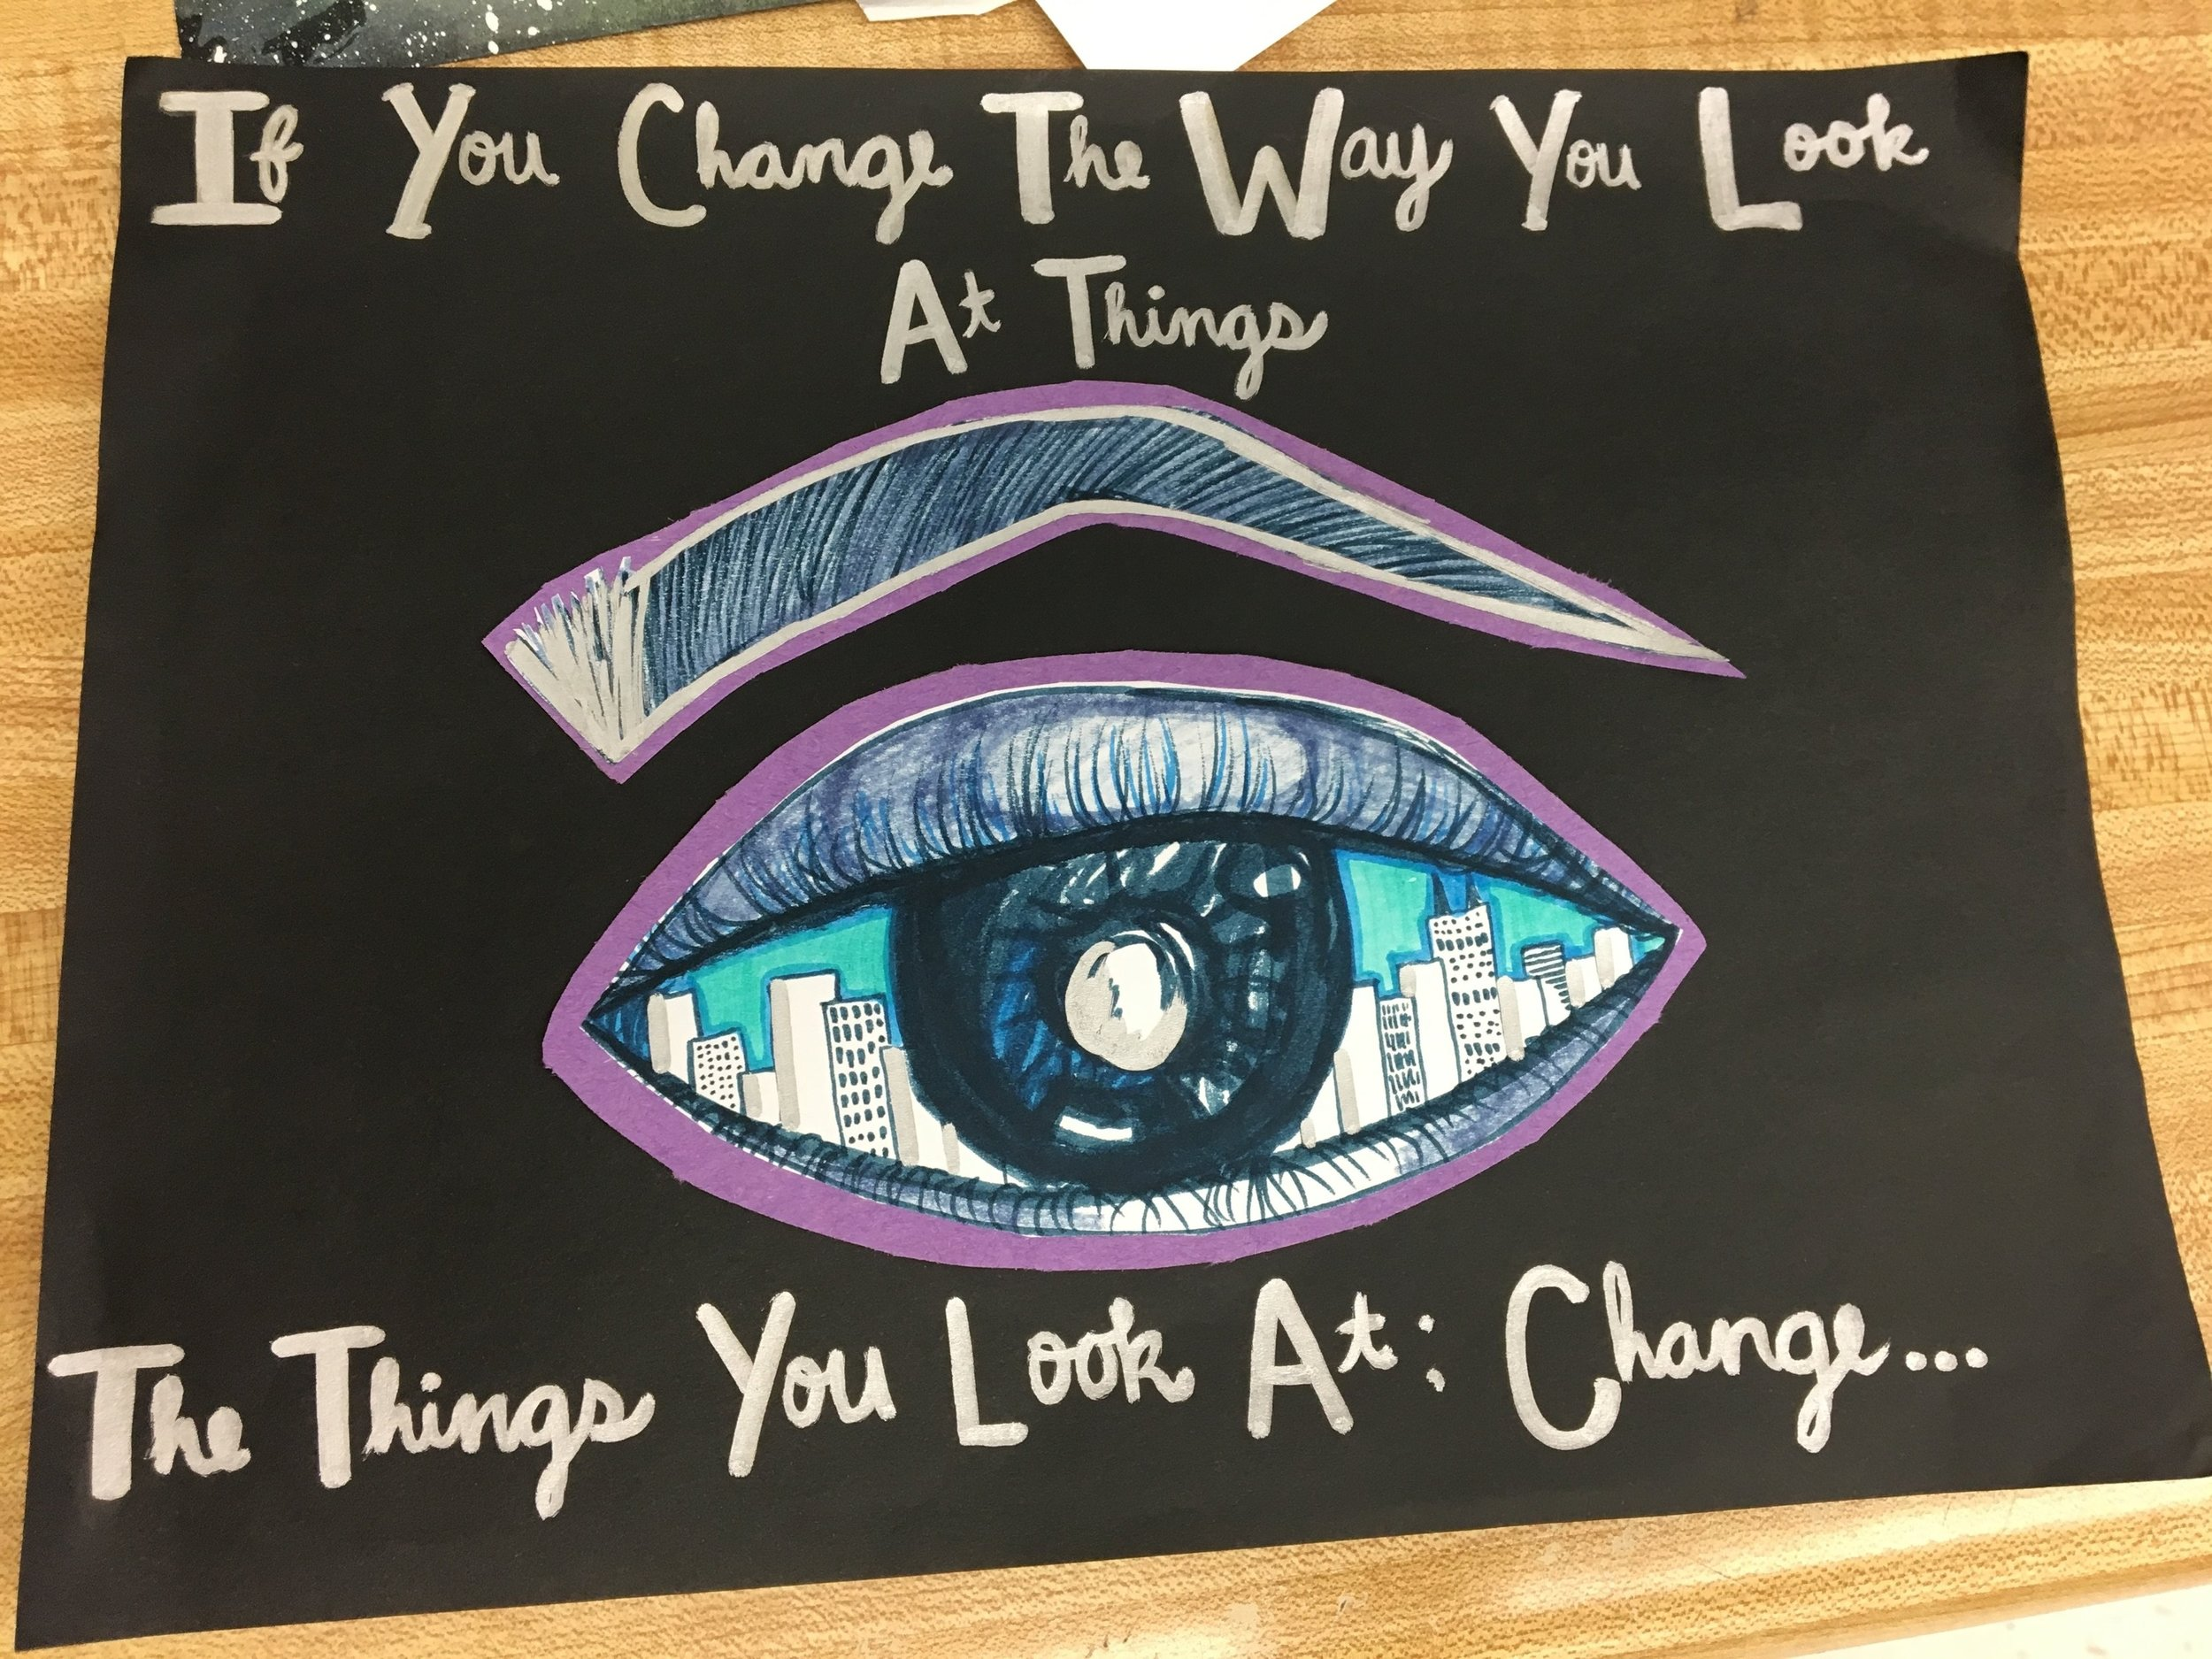 Students craft imagery drawing inspiration from text.